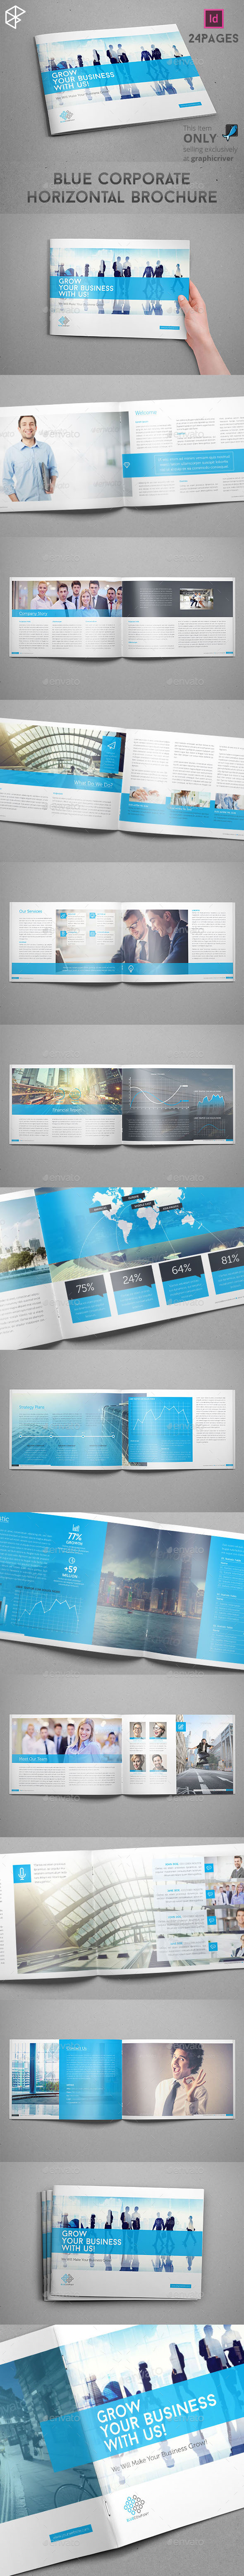 GraphicRiver Blue Corporate Horizontal Brochure 9771936